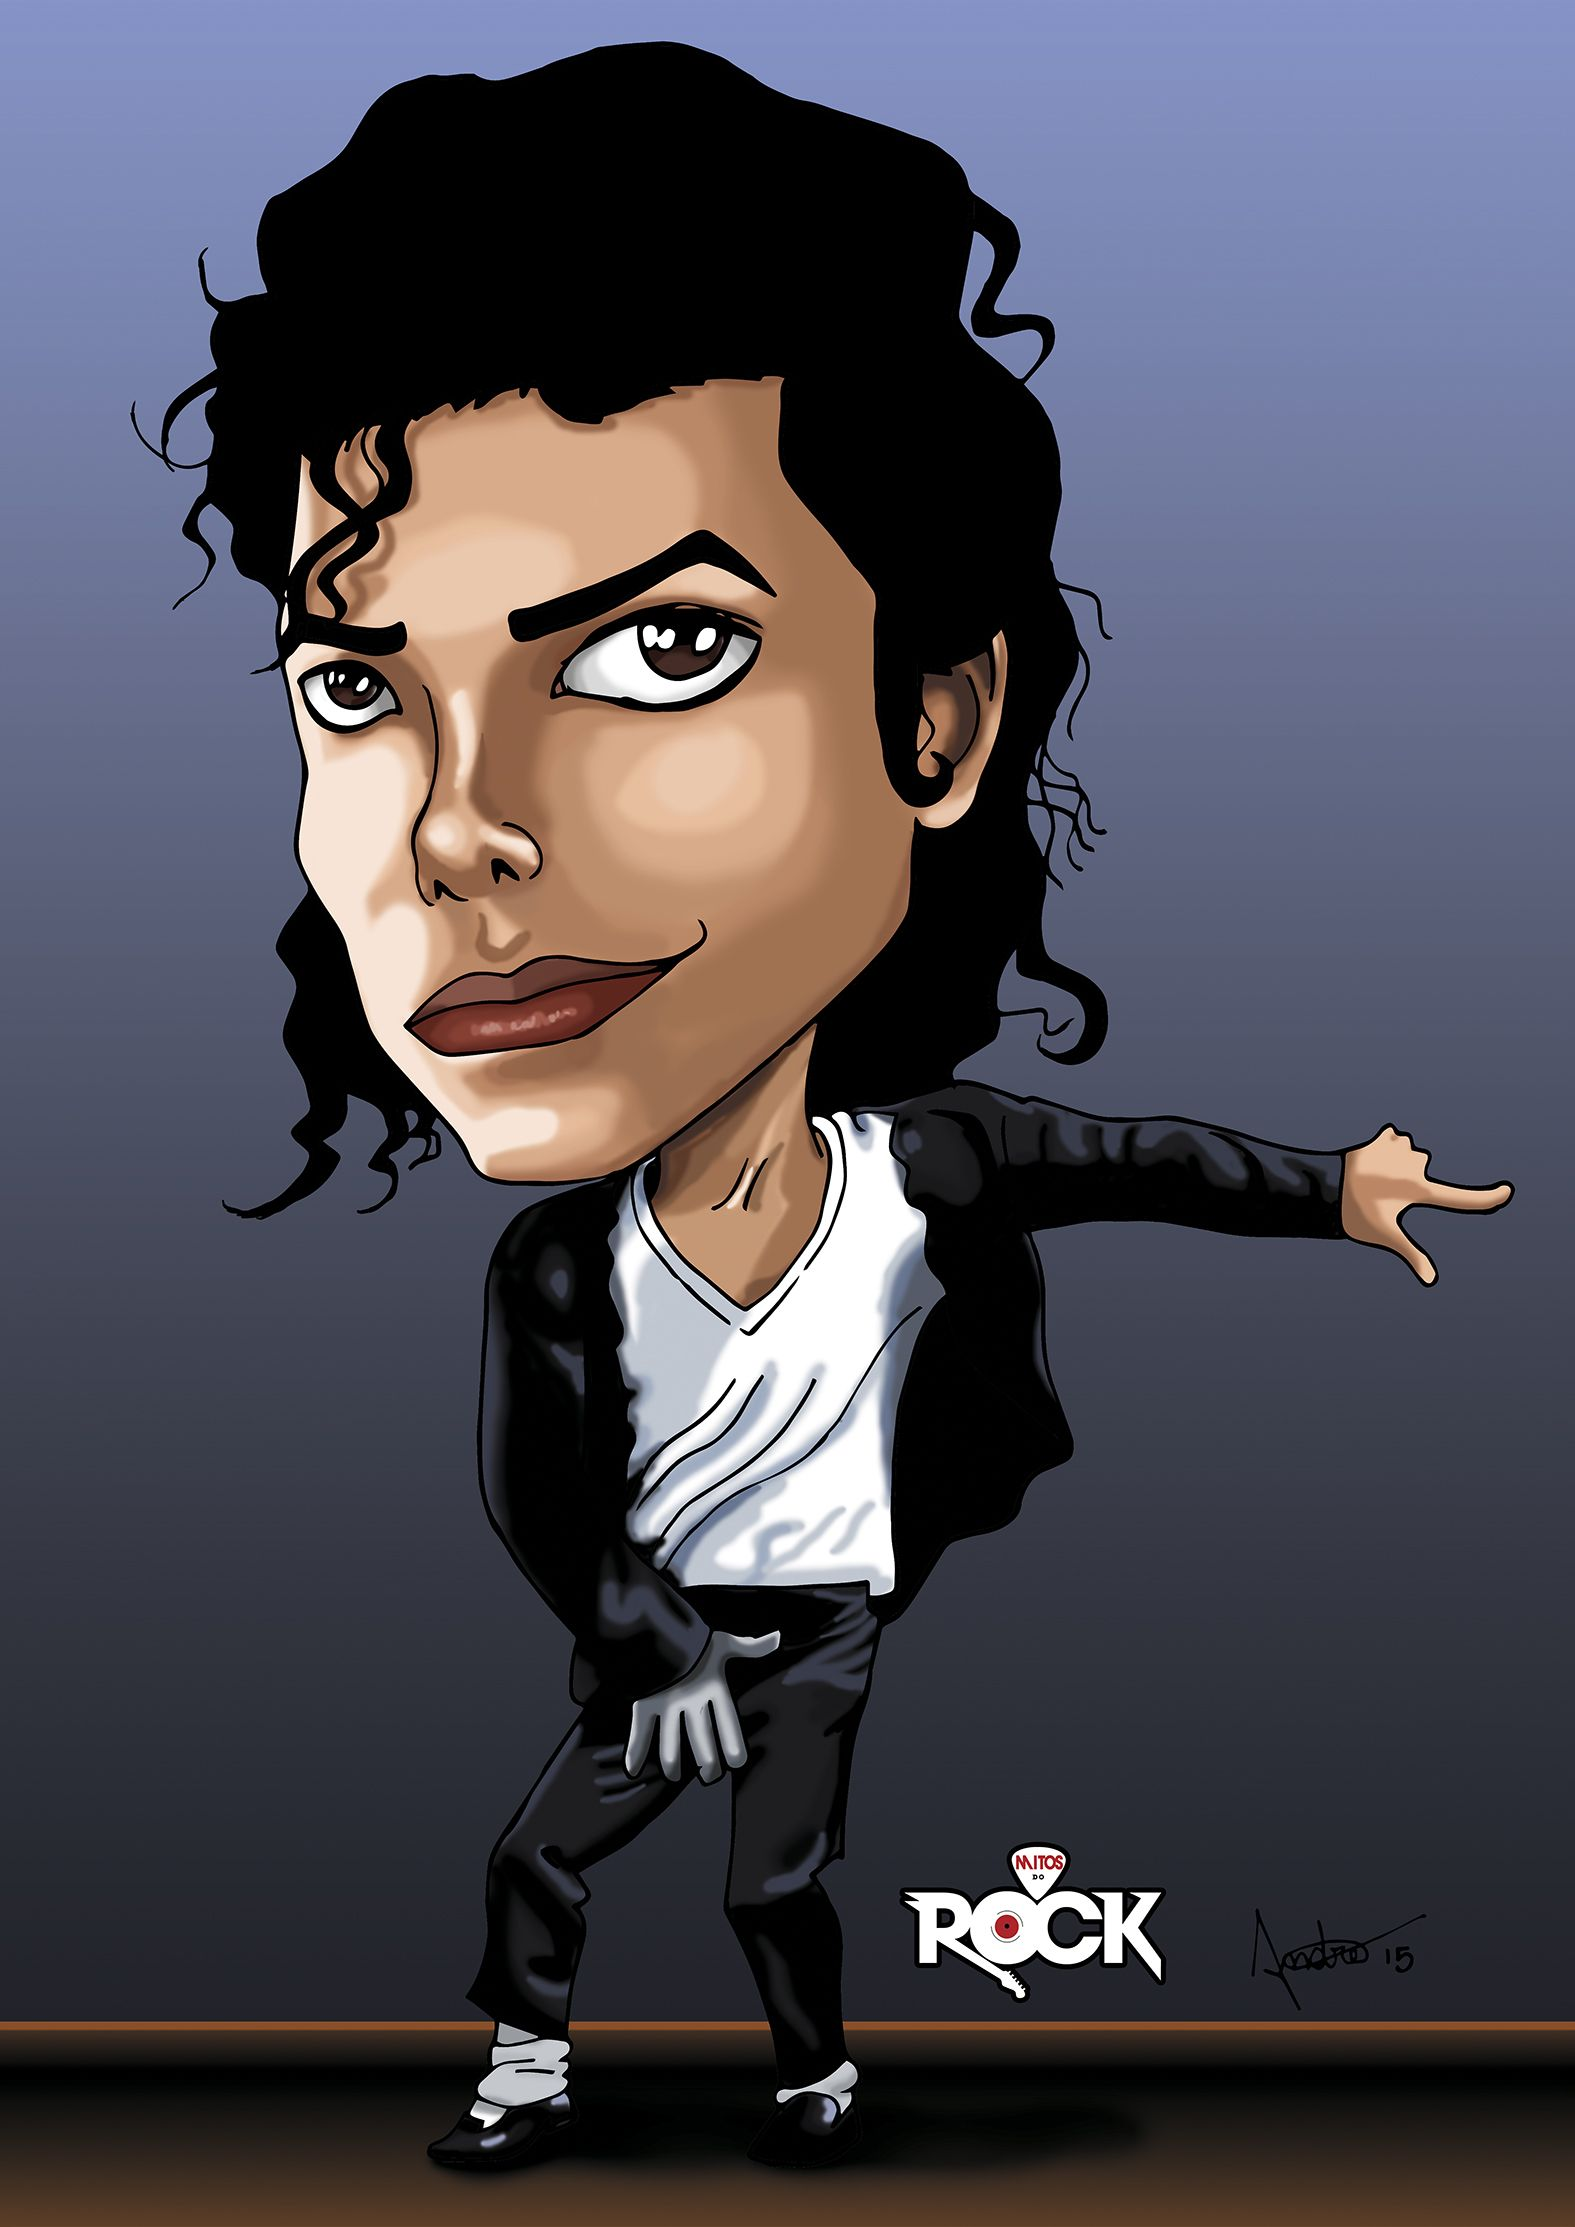 529335d9a2 Caricature Michael Jackson | Caricature Drawings in 2019 ...